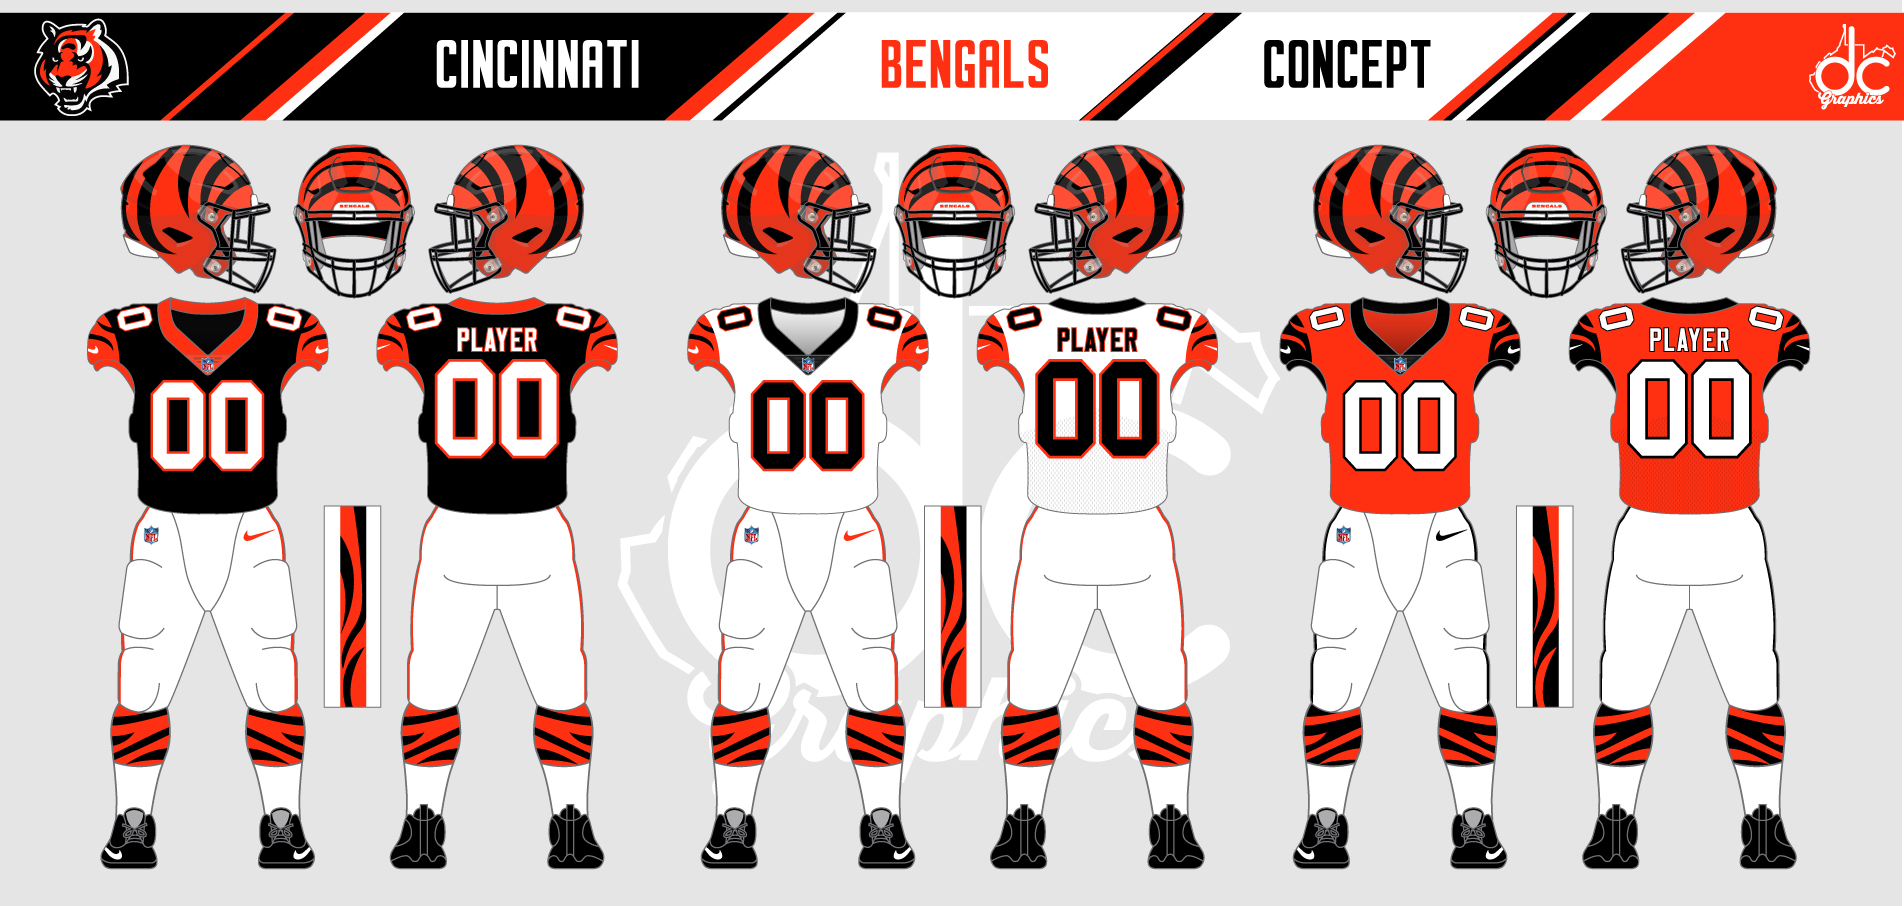 Cincinnati Bengals Uniform Redesign Challenge Results